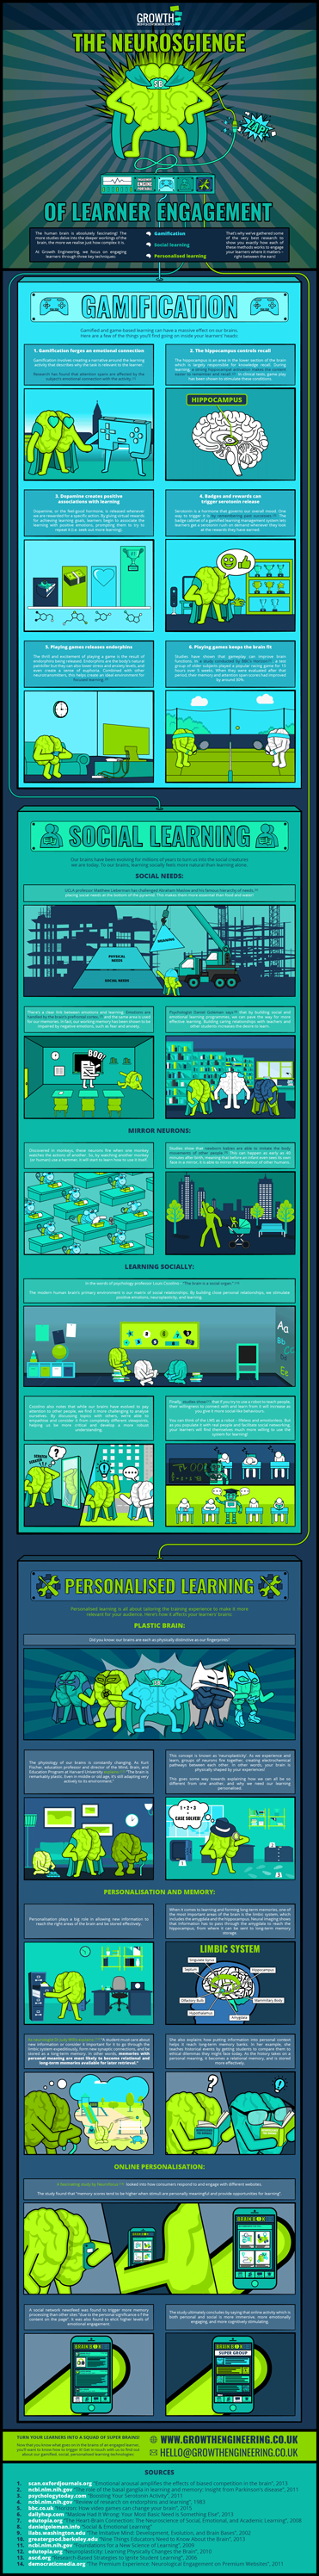 Informal learning vs formal learning infographic 2016